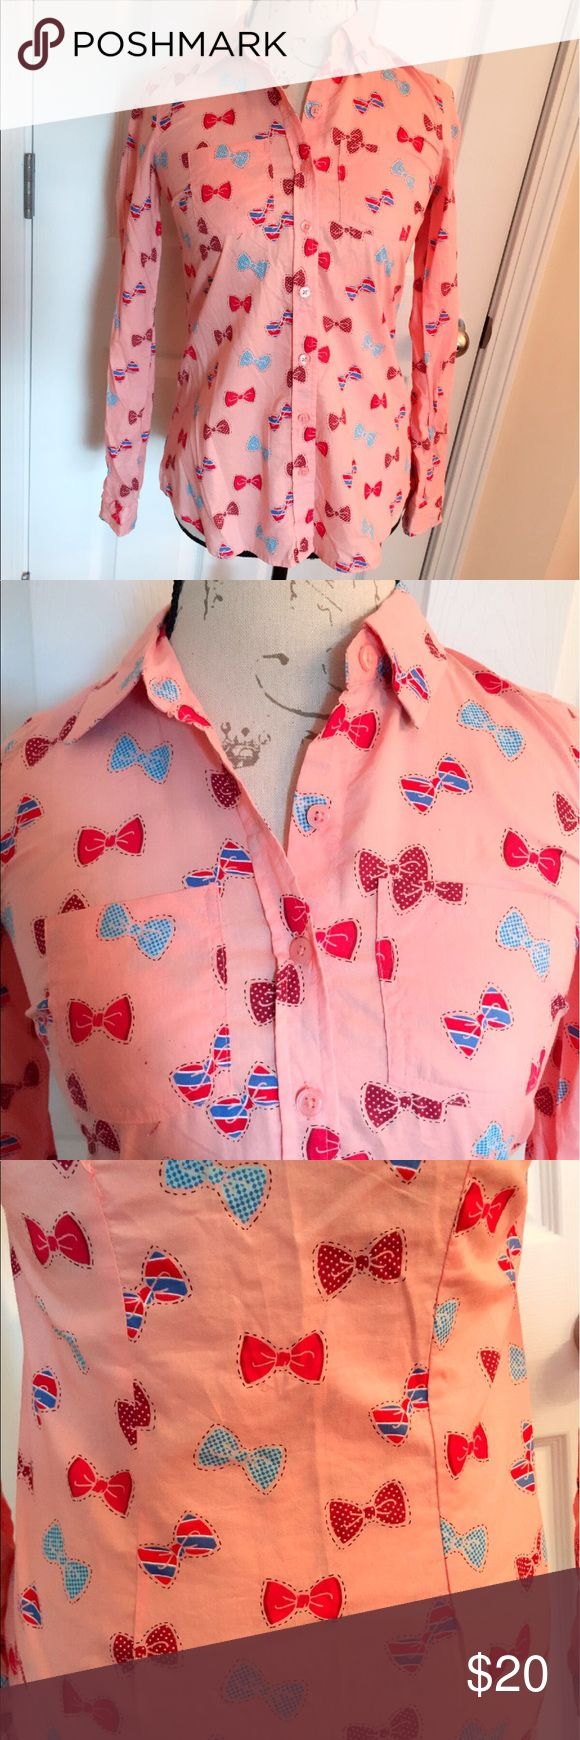 Red Camel Juniors Long Sleeved Shirt w/ Bow Print Brighten up your day with this Red Camel Pink button down shirt with printed bows. Long Sleeved. 100% Cotton. Great with dark colored jeans. Never used, brand new with tag. Red Camel Tops Button Down Shirts